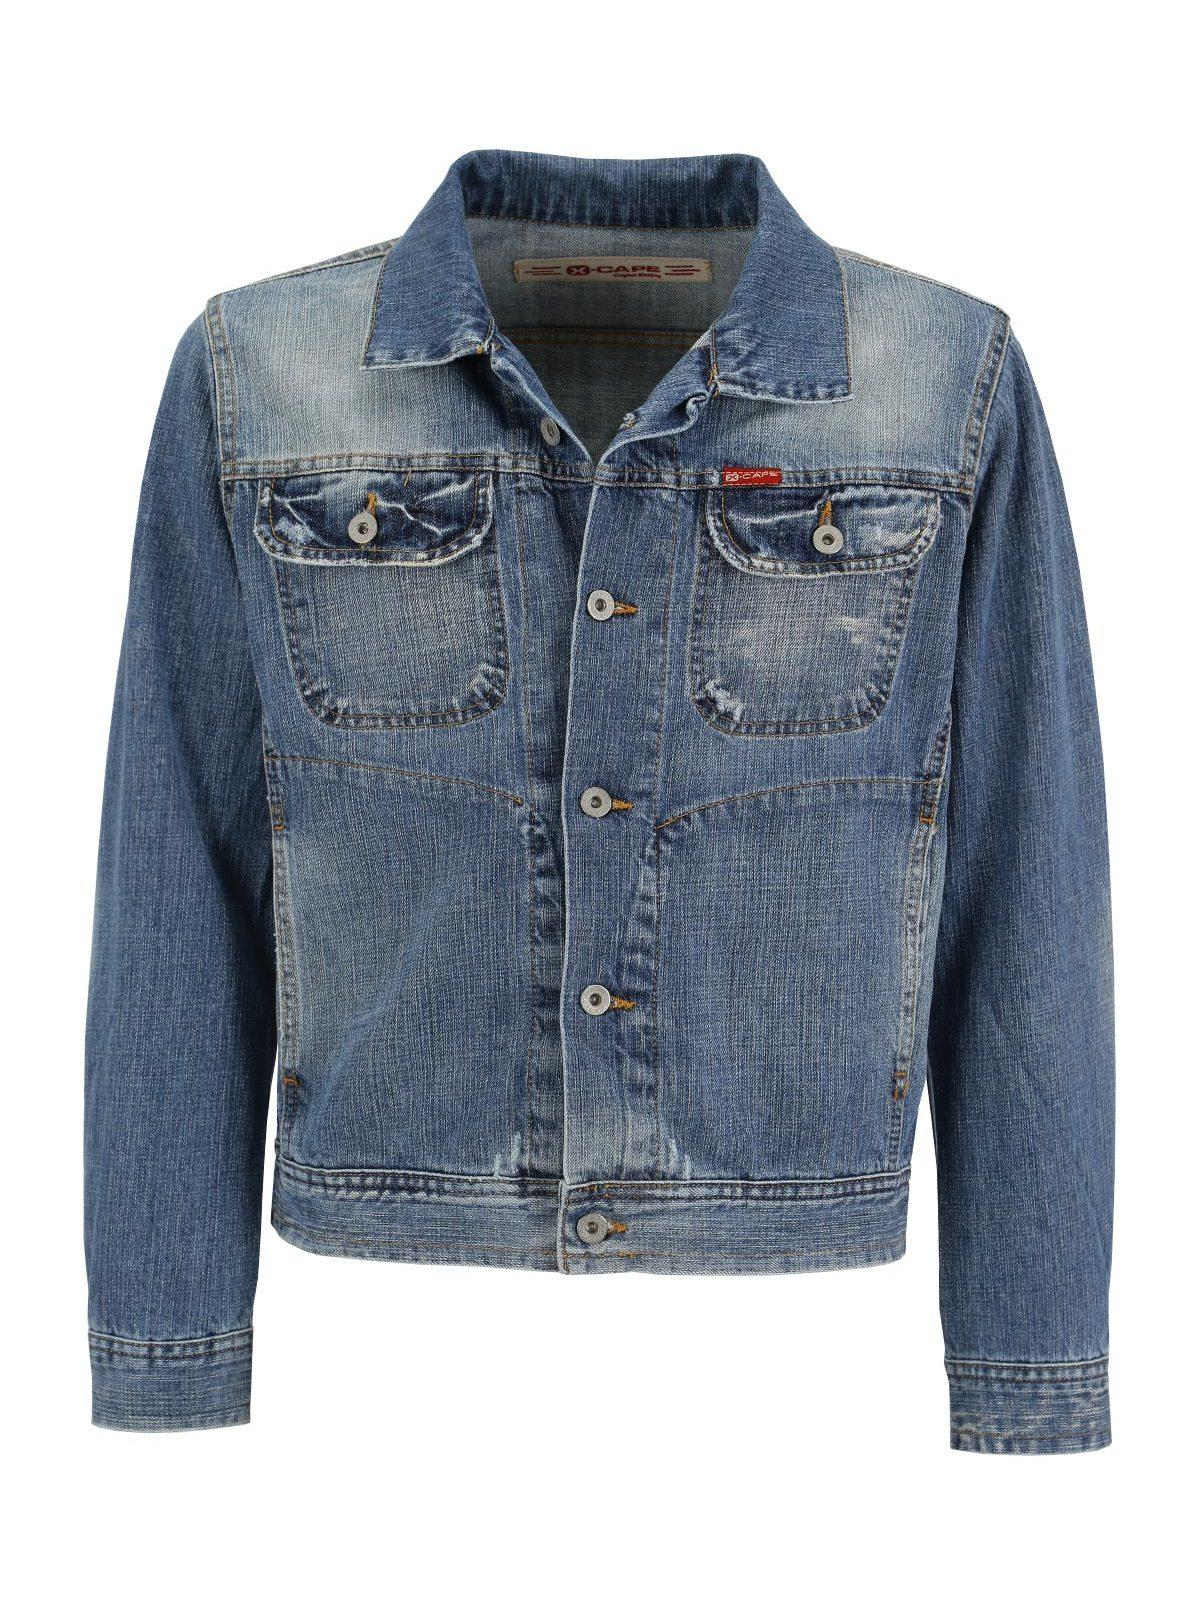 new product 35831 6c247 Giacca in jeans x-cape | MecShopping